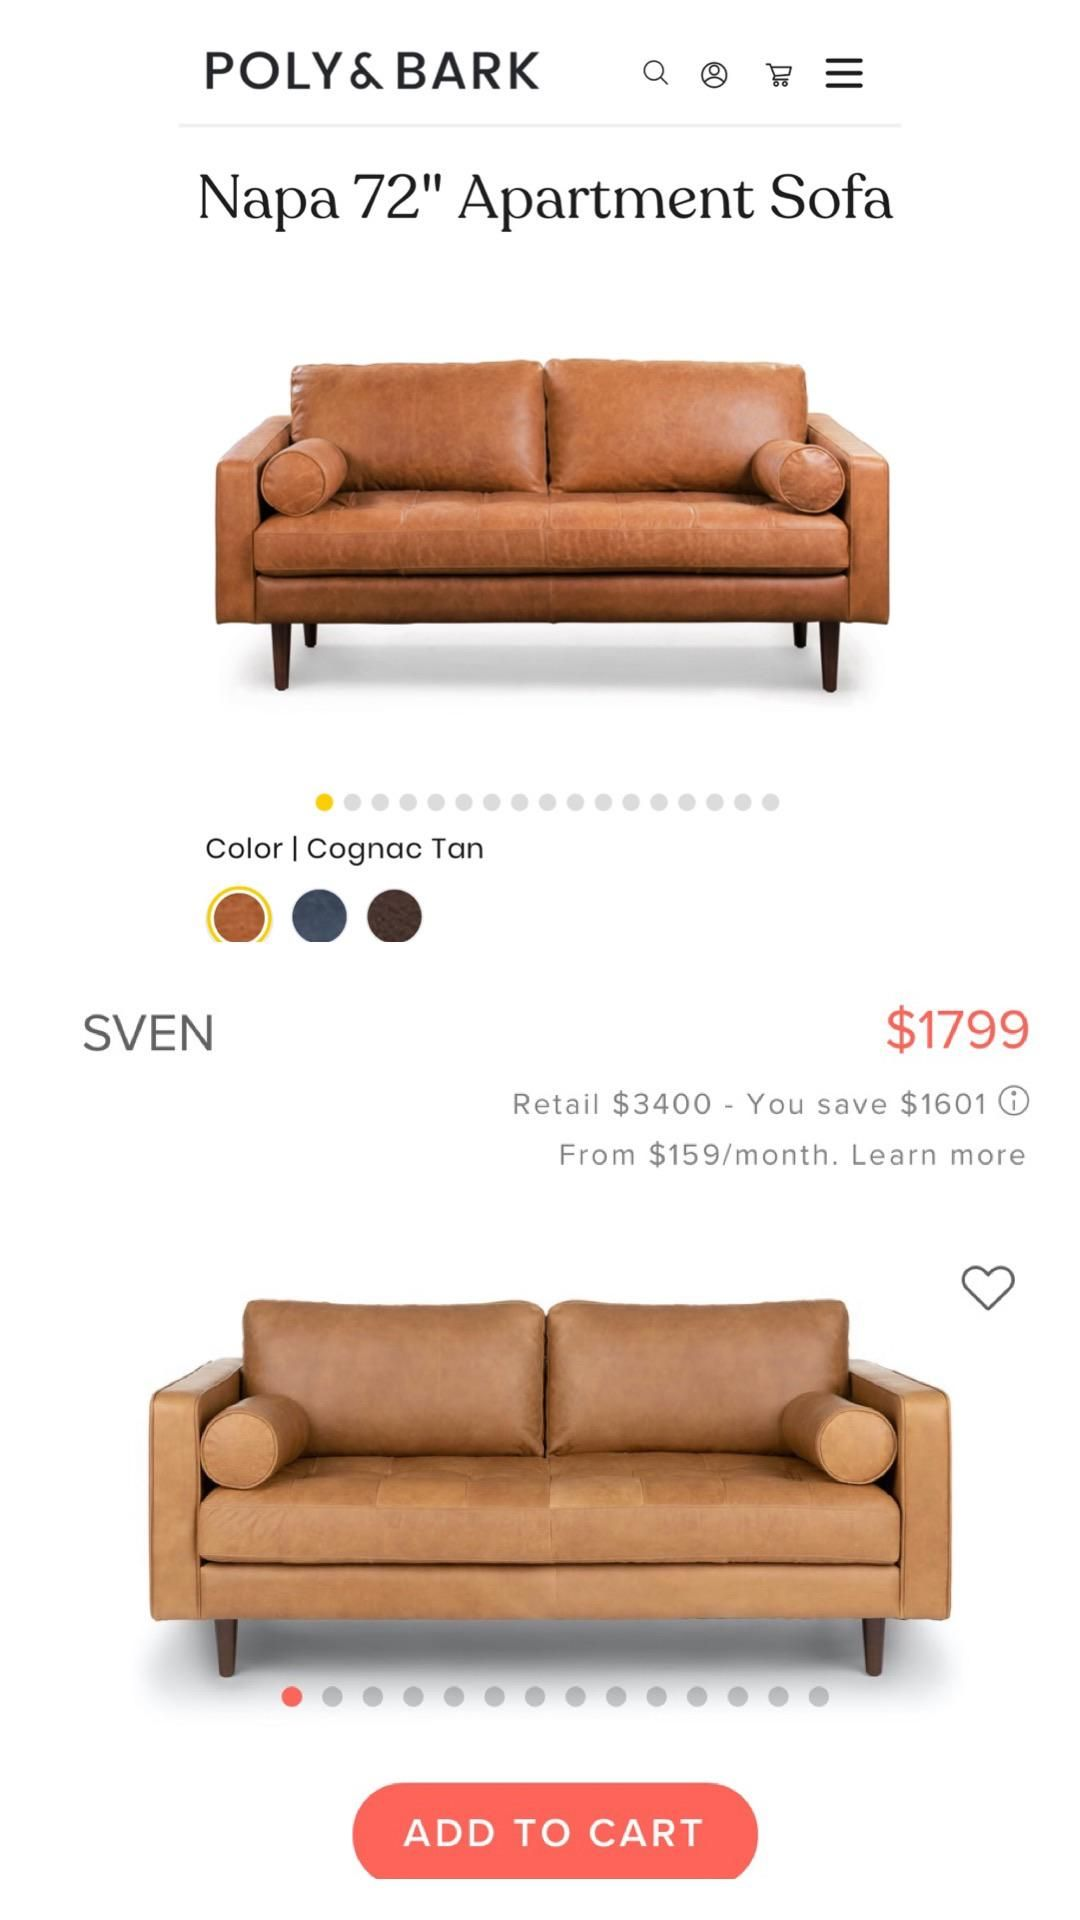 Article Vs Poly Amp Bark Sofas Has Anyone Ordered From Either Company Or Tested The Quality Of The Sofas And If S In 2020 Poly Bark What Is Interior Design Sofas